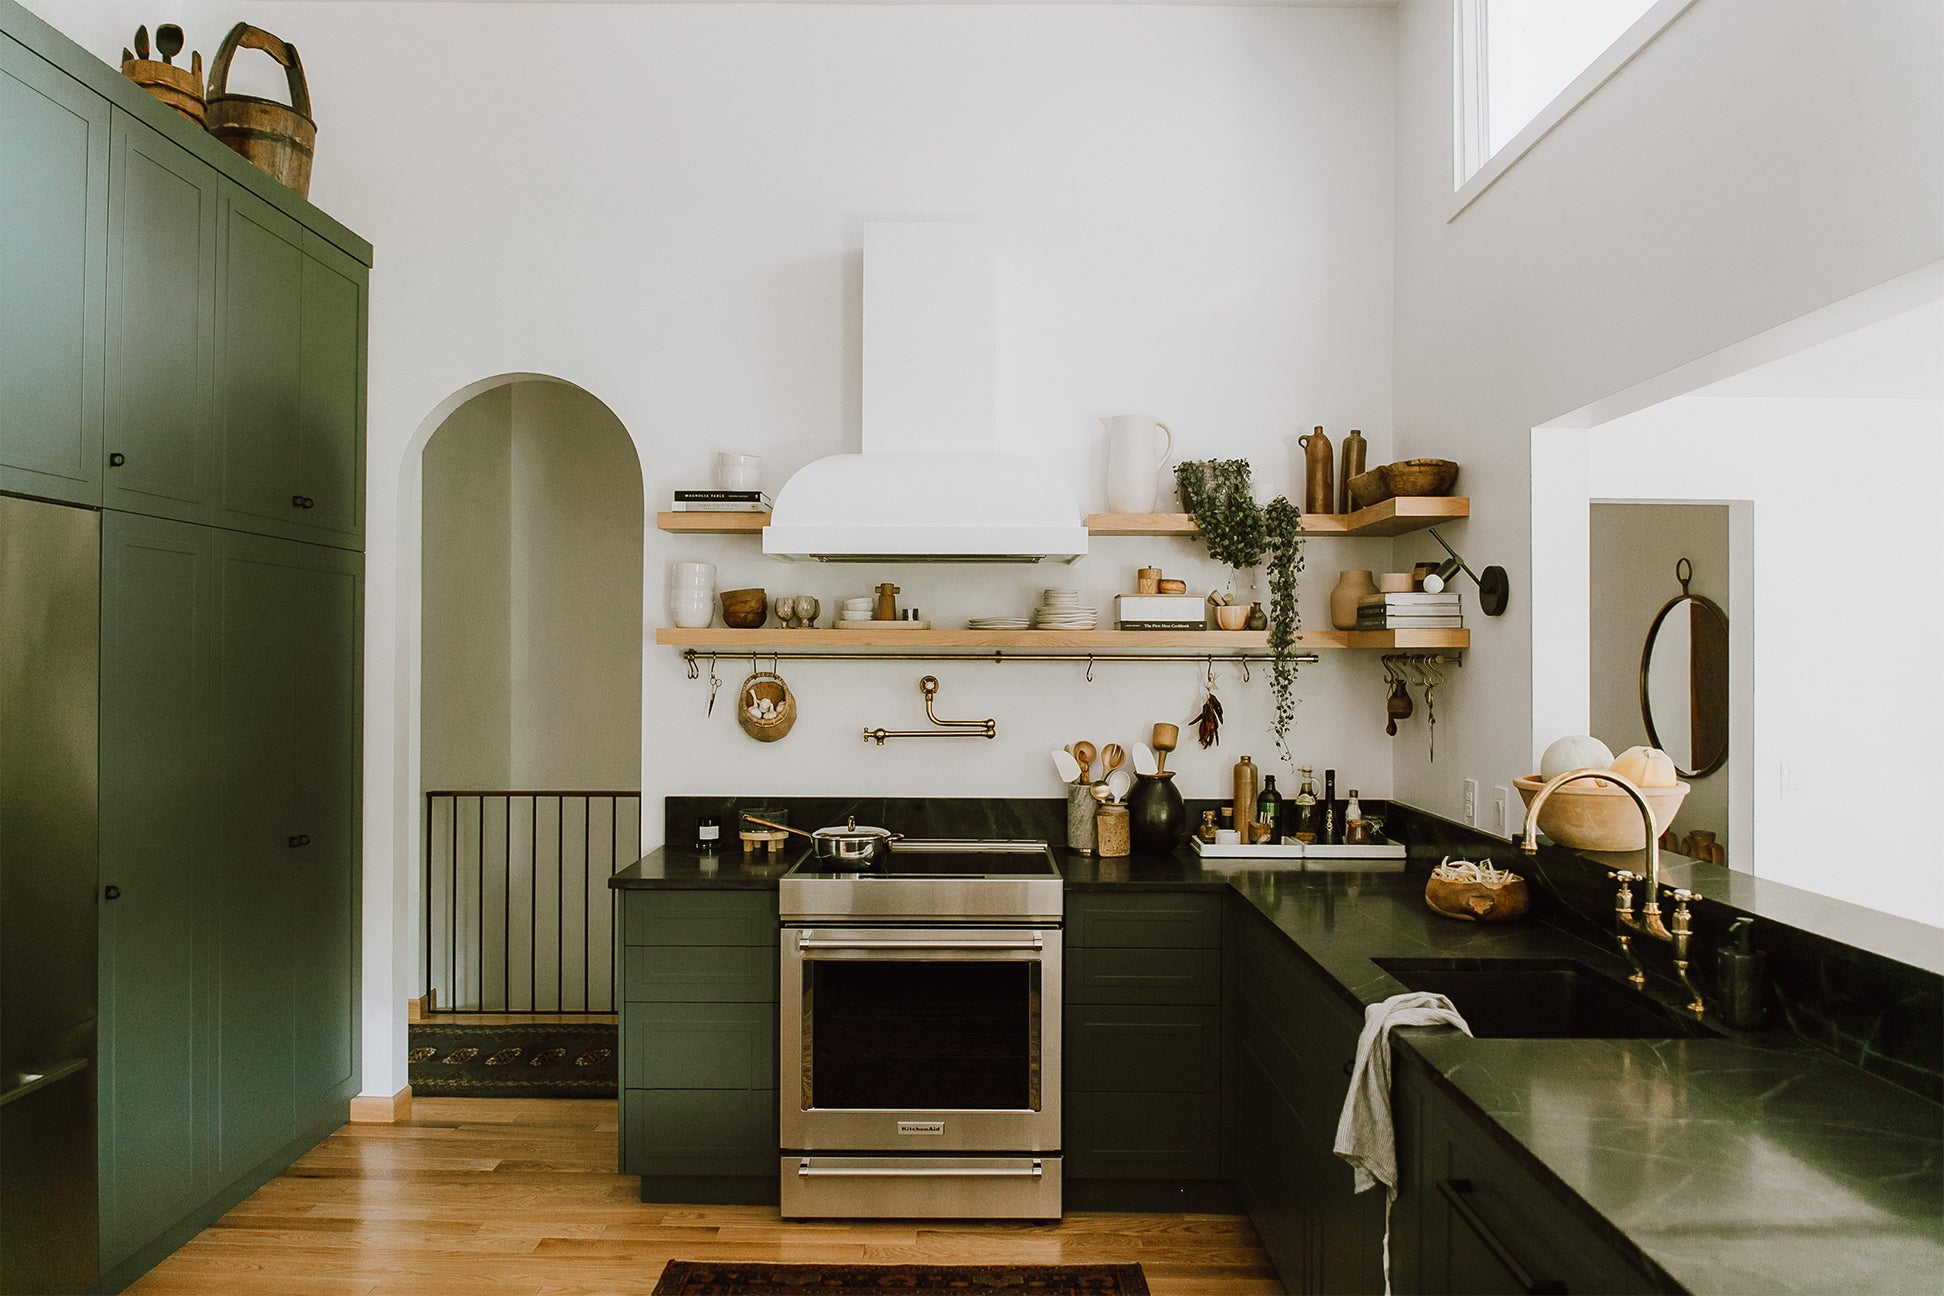 9 Green Kitchen Cabinet Ideas For Your Most Colorful Renovation Yet